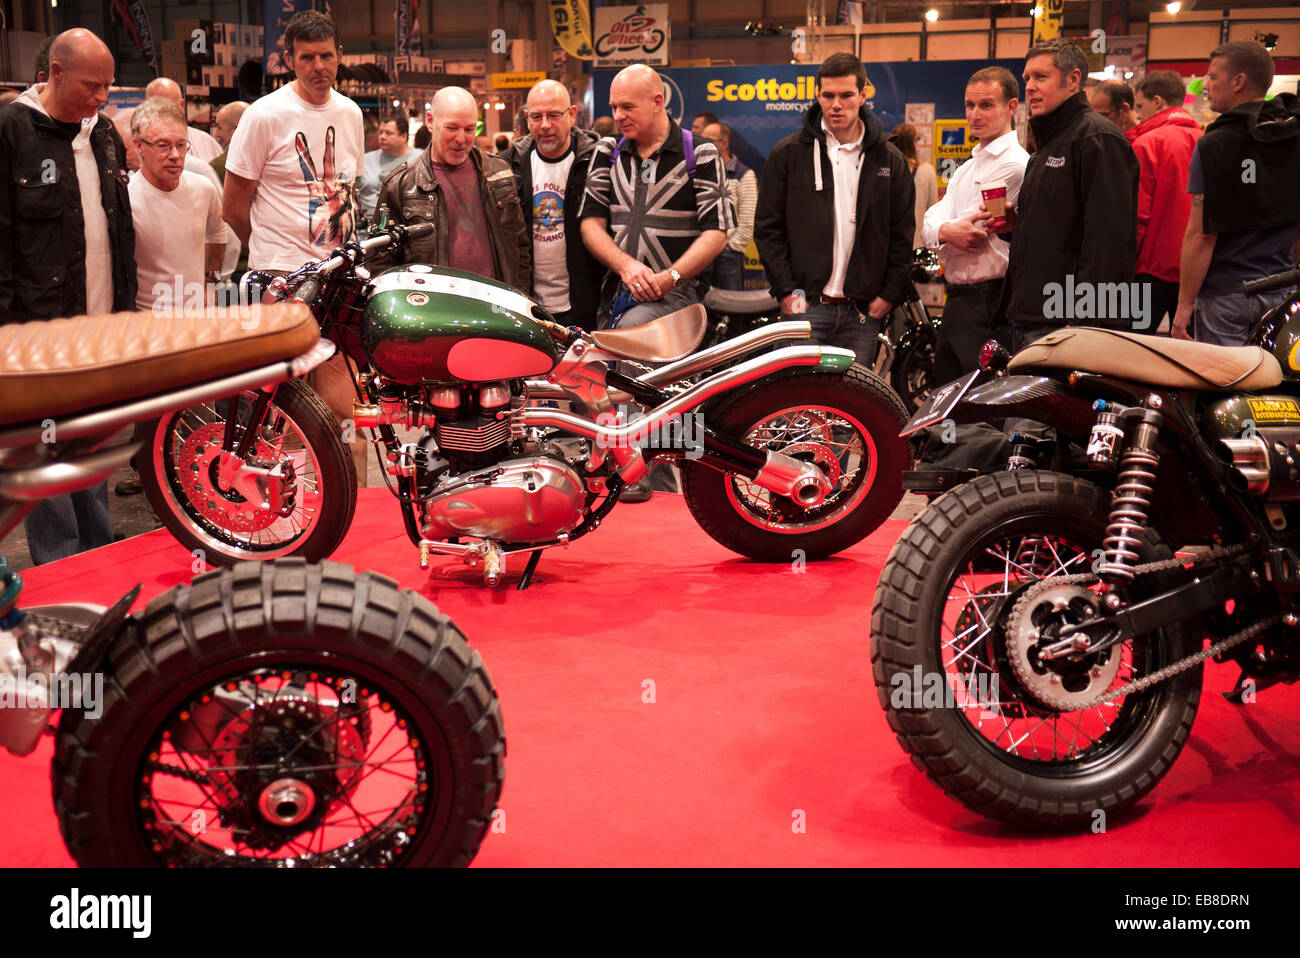 Visitors to the Motorcycle Live show at Birmingham's NEC, take a look at a custom Triumph motorcycle. - Stock Image